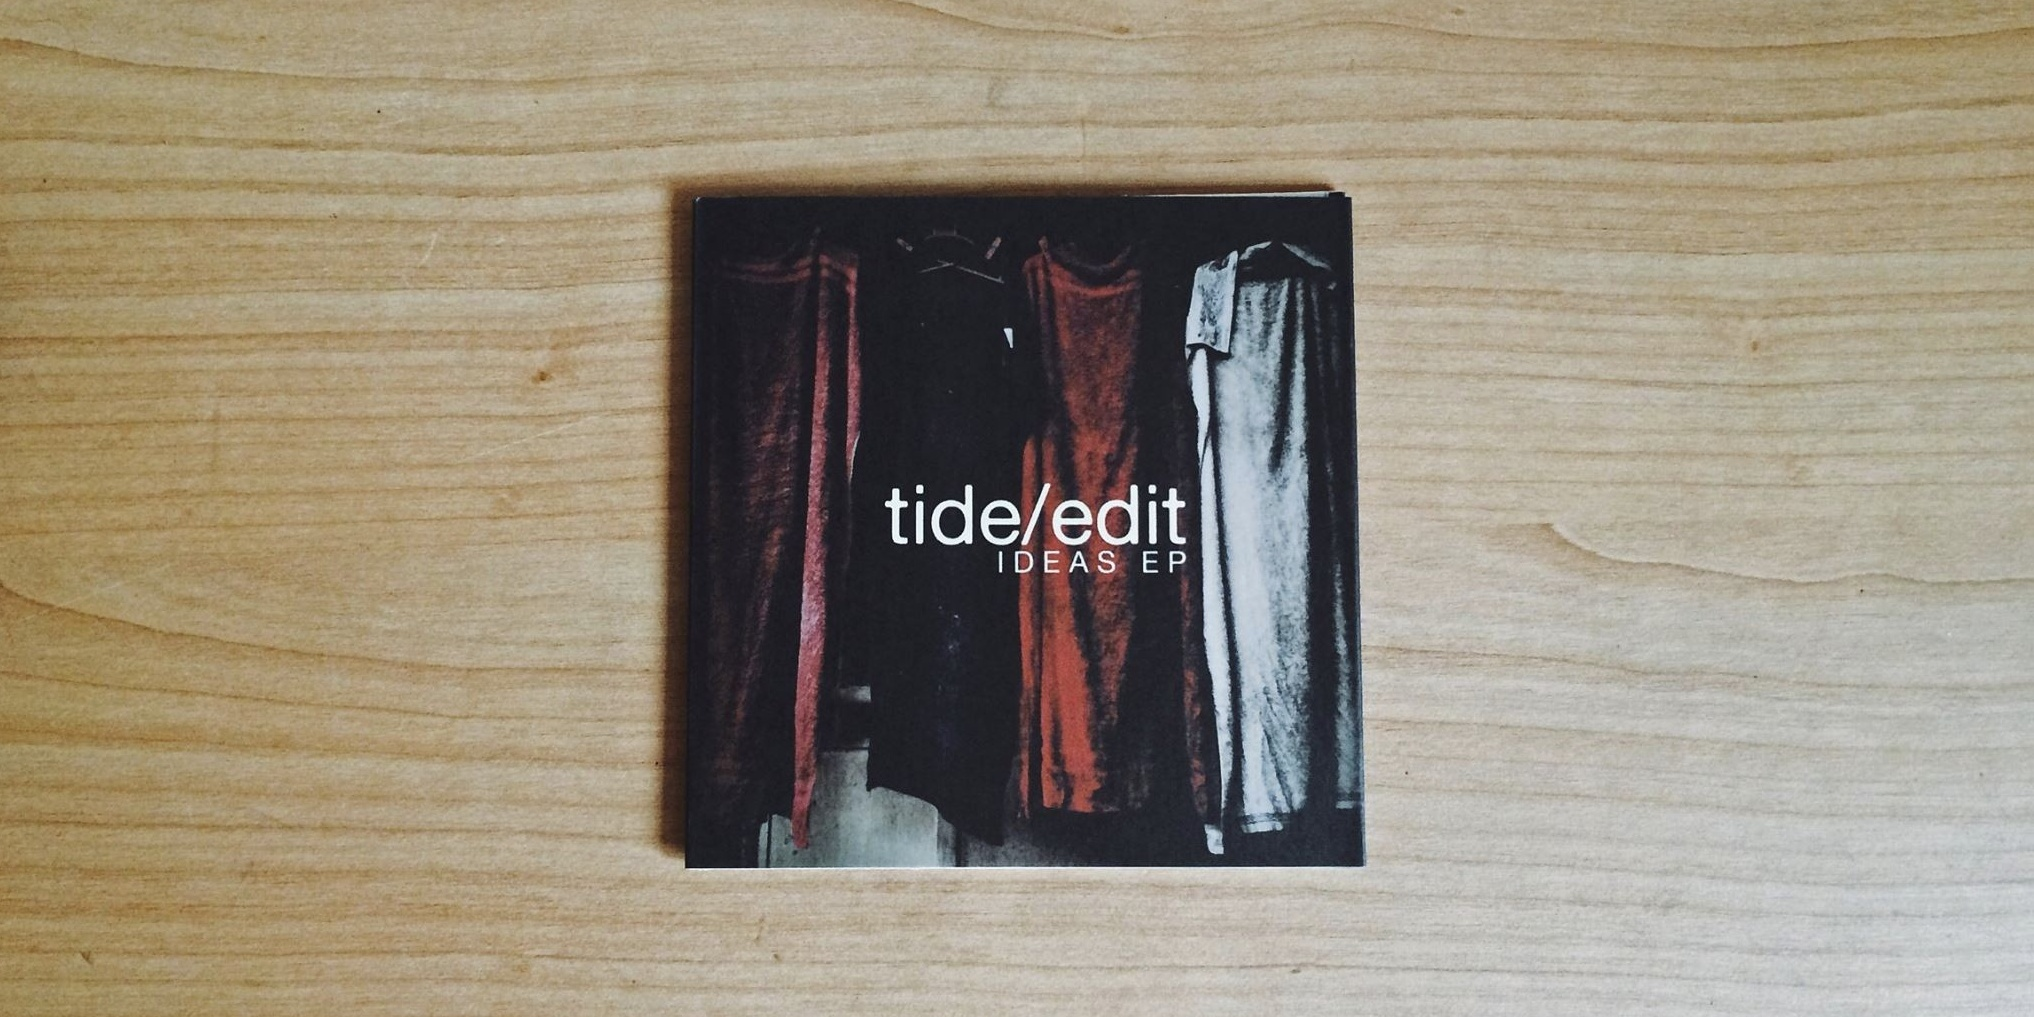 tide/edit's Ideas EP turns 5 with special live release